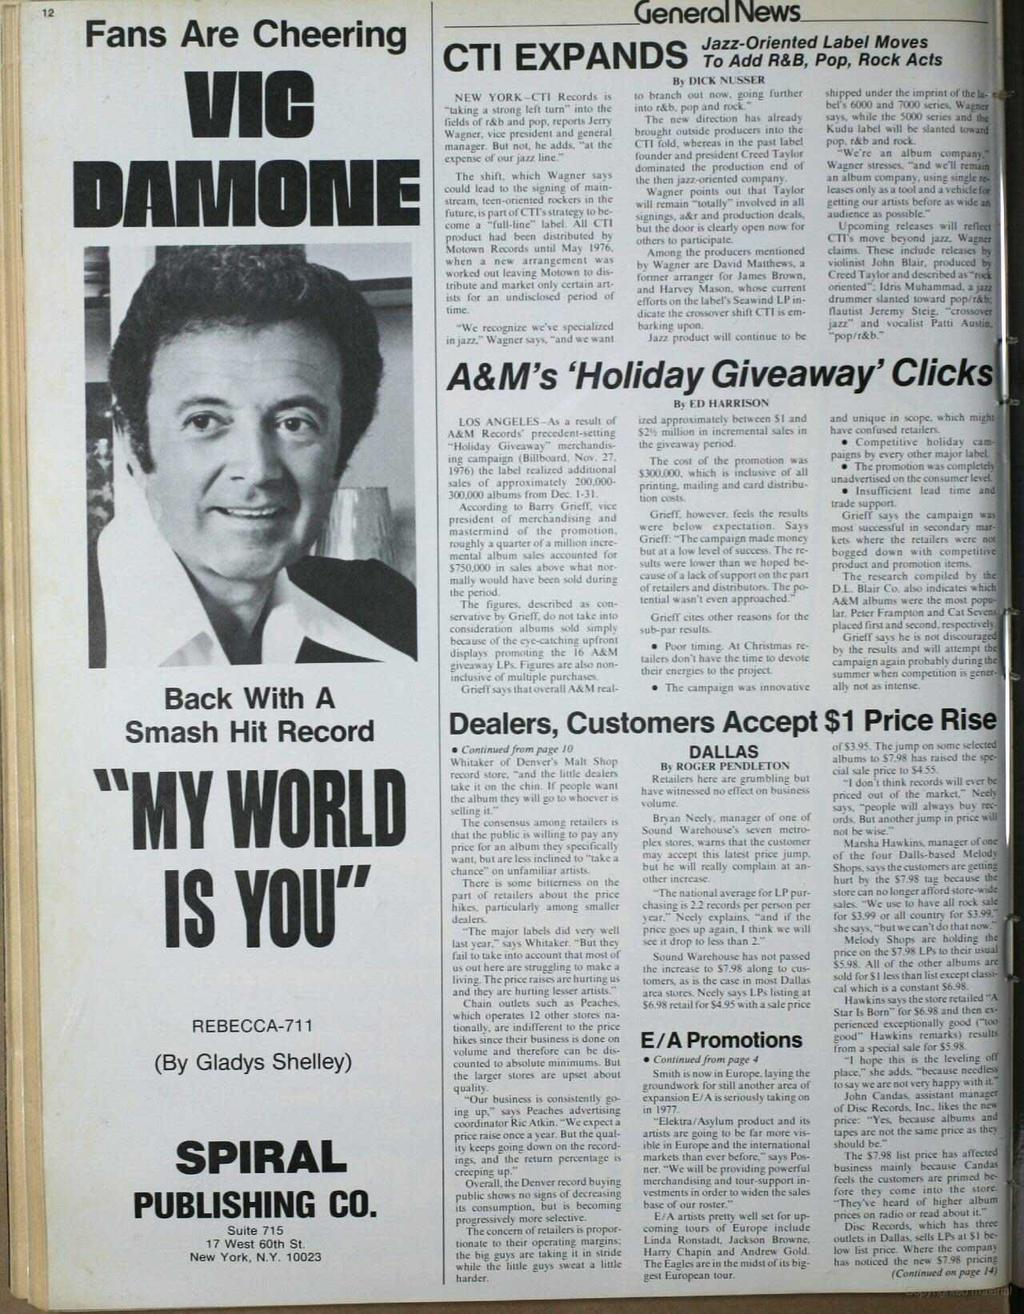 "Fans Are Cheering v'o DAMONE Back With A Smash Hit Record ""MY WORLD IS YOU"" REBECCA -7 (By Gladys Shelley) SPIRAL PUBLISHING CO. Suite 75 7 West 60th St. New York, N.Y. 0023 venerol News_ CTI EXPANDS Jazz -Oriented Label Moves By UIt k \ t sser NEW YORK -CTI Records as tai branch out it."